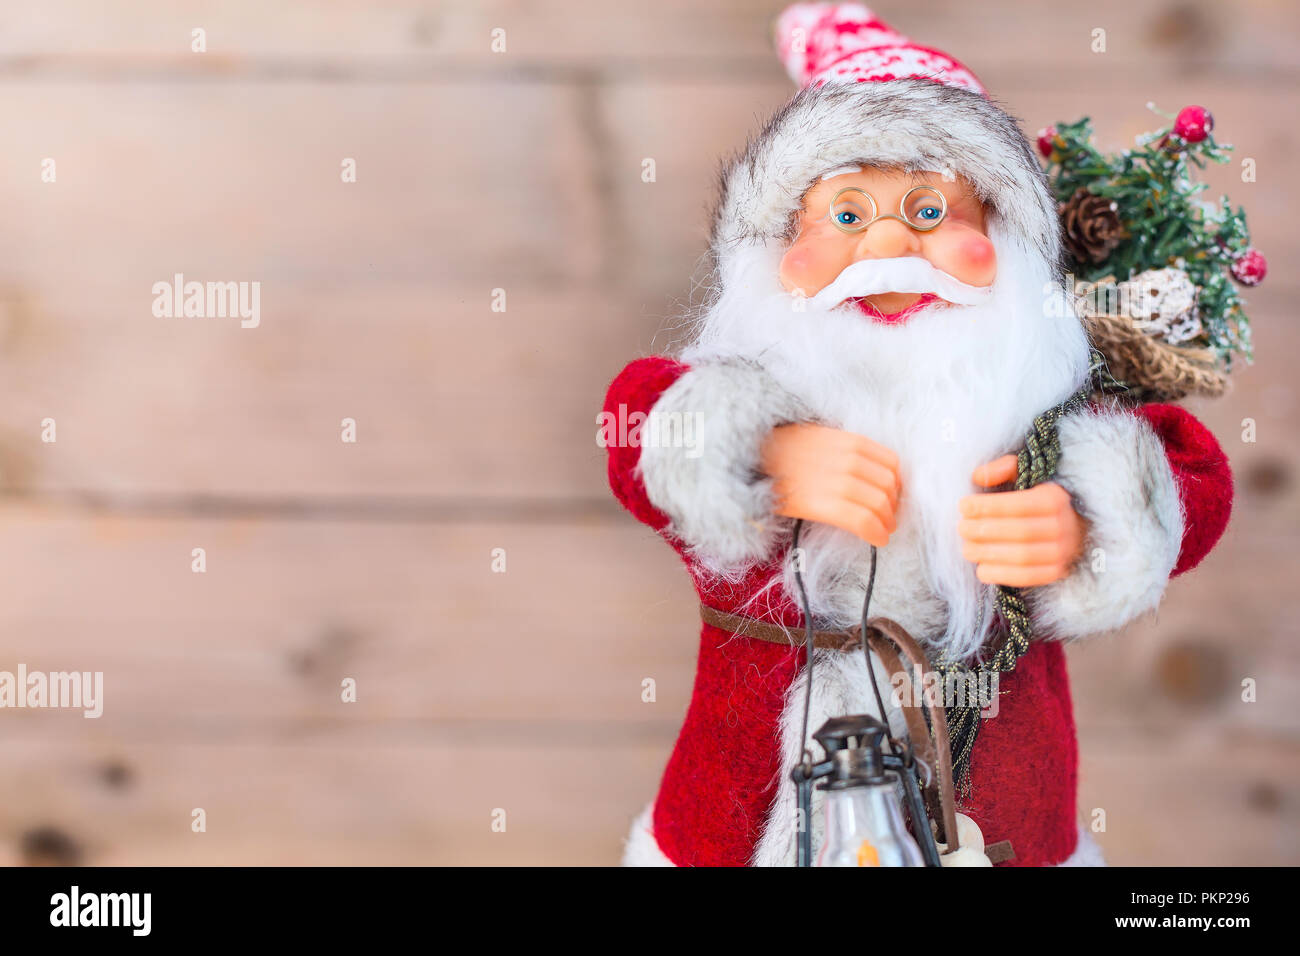 Christmas or New Year Santa Claus background with copy space - Stock Image